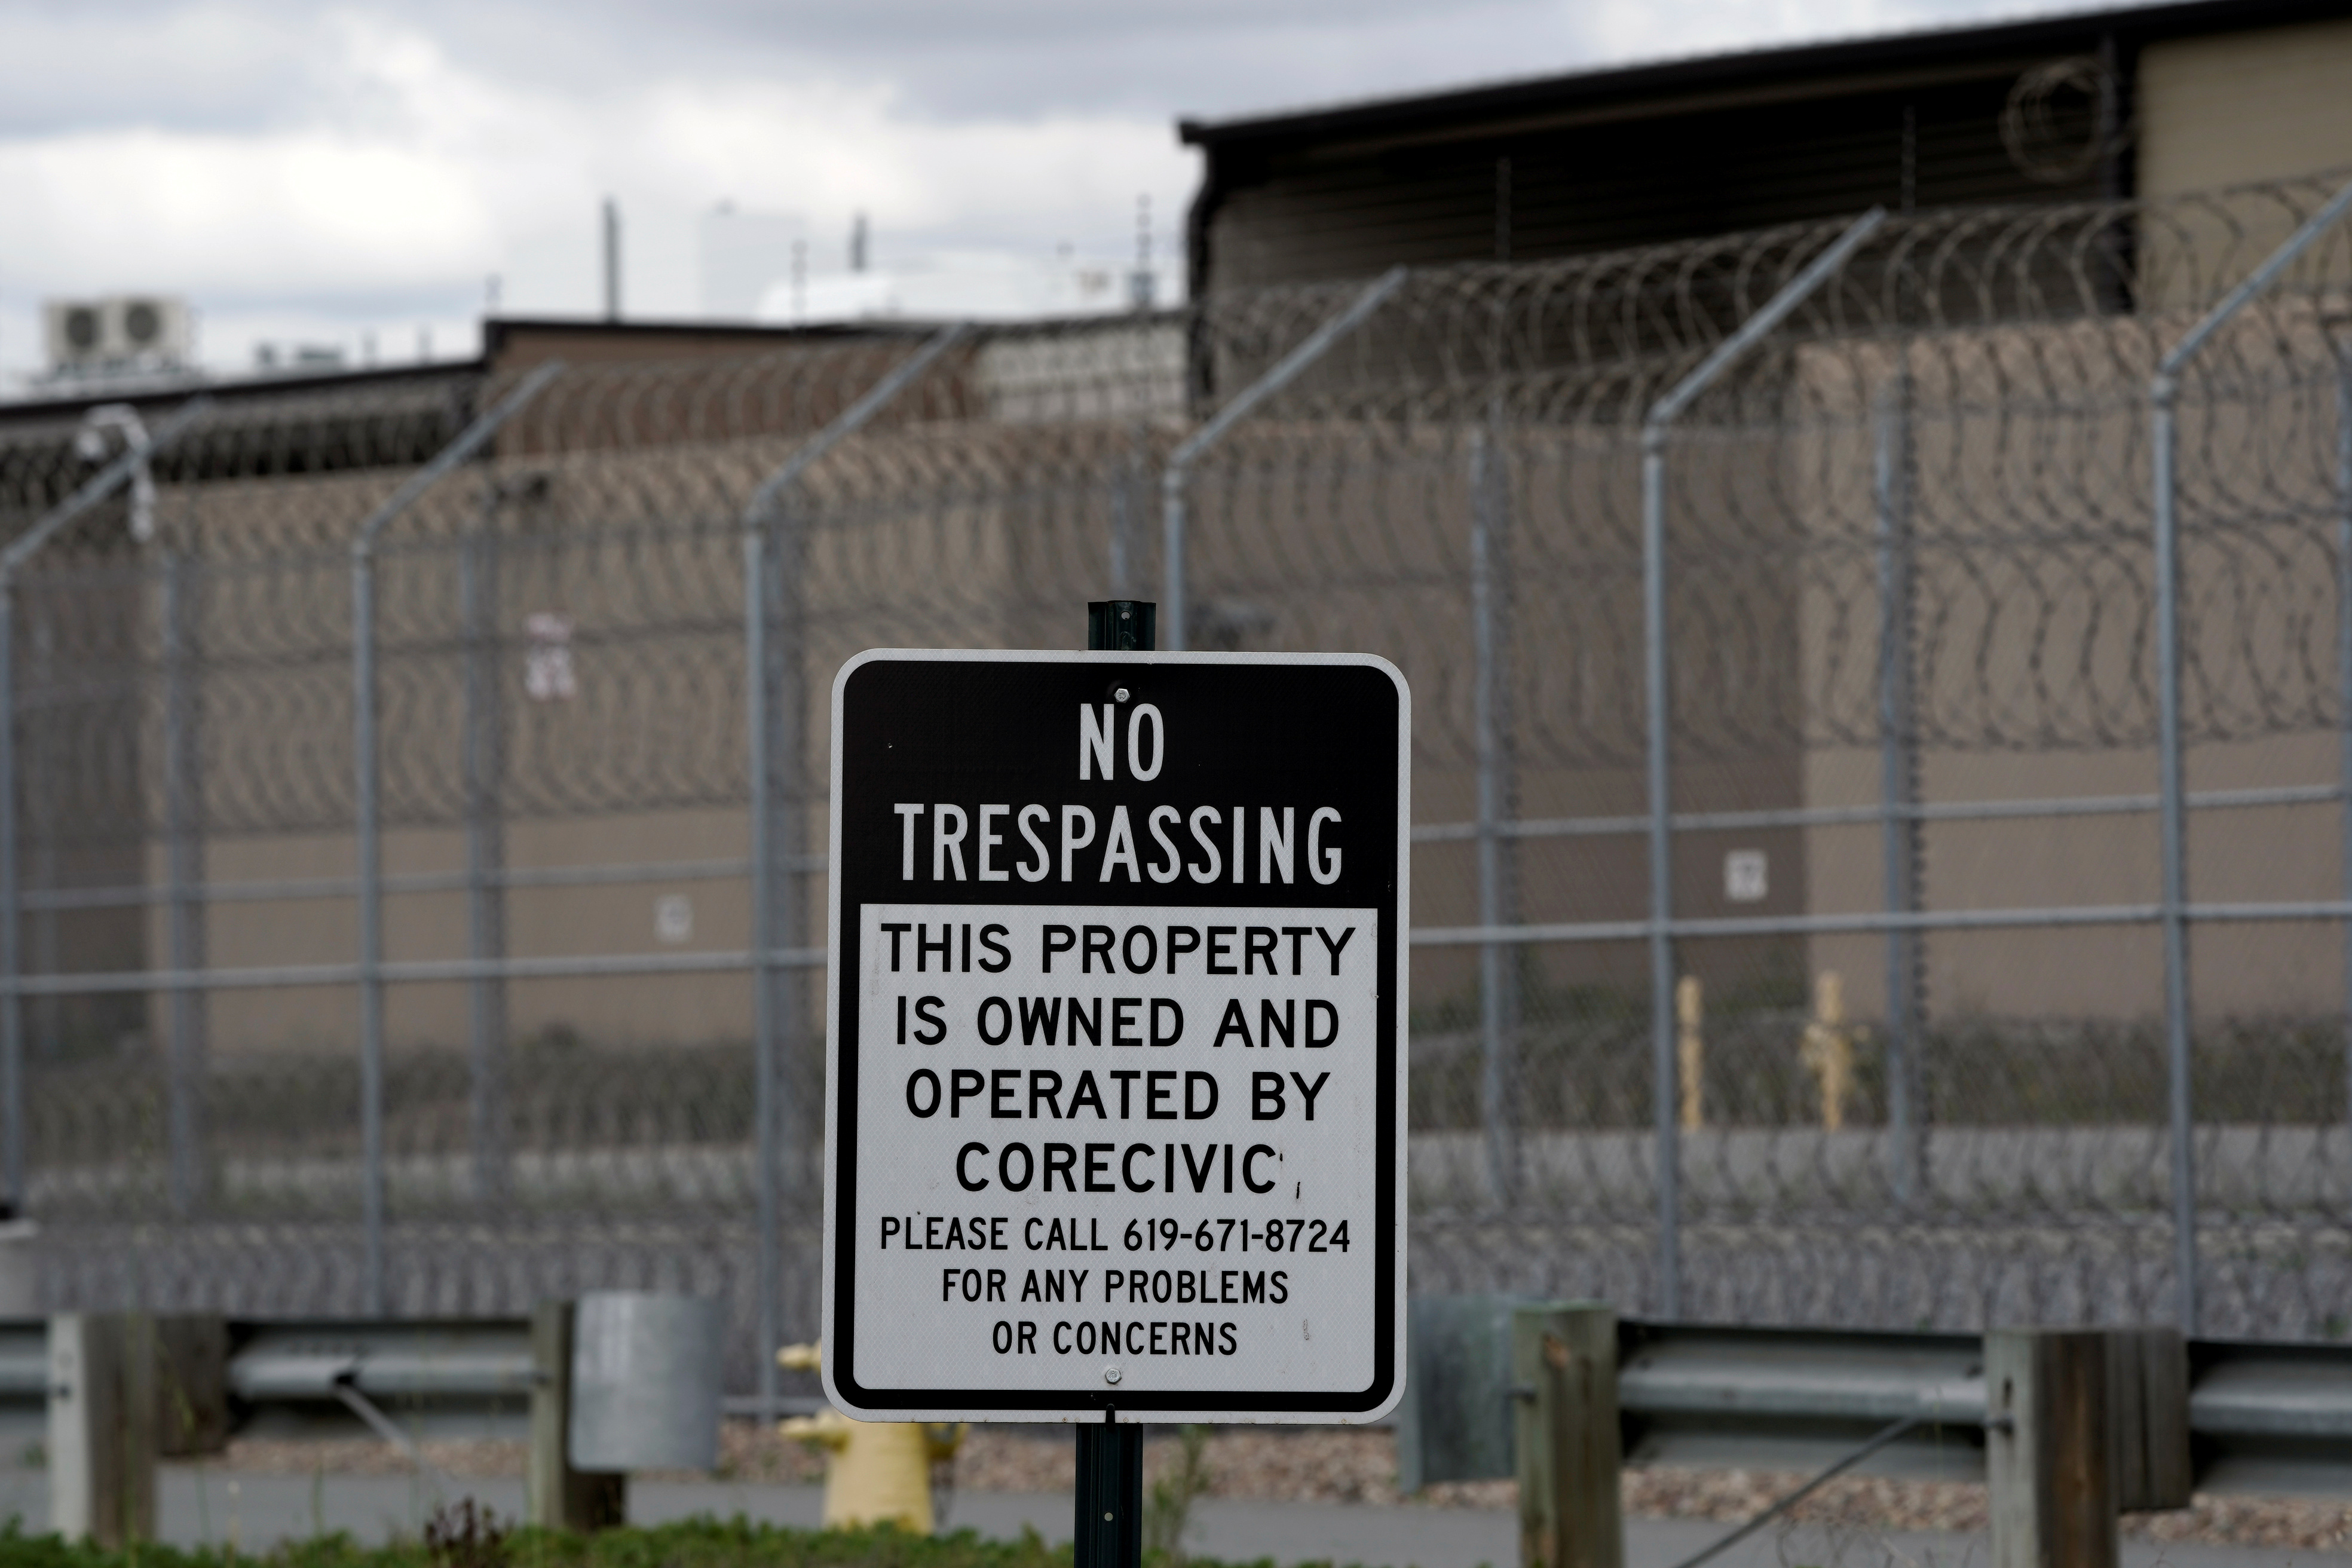 A ''no trespassing'' sign is seen outside the Otay Mesa Detention Center, a ICE (Immigrations & Customs Enforcement) federal detention center privately owned and operated by prison contractor CoreCivic, amid the coronavirus disease (COVID-19) outbreak in San Diego, California, U.S., April 11, 2020. REUTERS/Bing Guan/File Photo